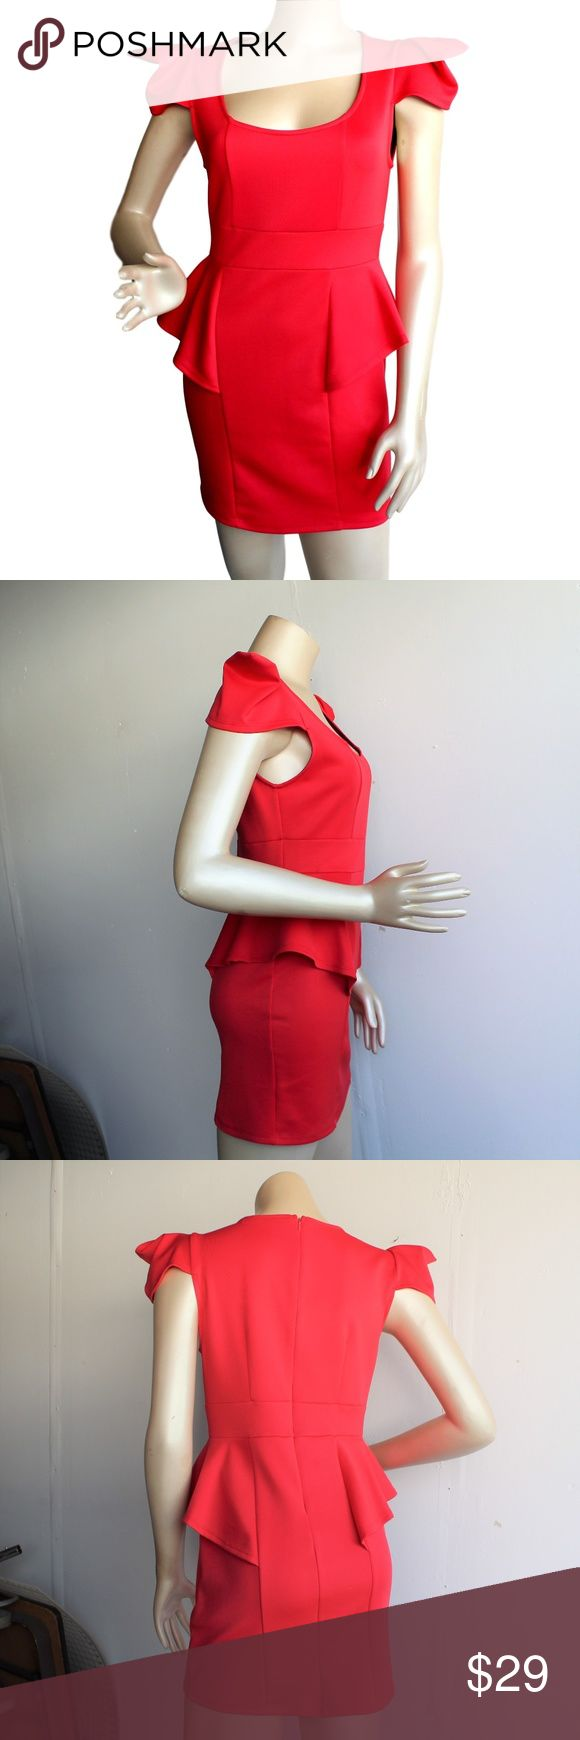 The Vintage Shop Red Peplum Dress Zips up the back. Unique shoulders. Peplum waist. 85% polyester/15% spandex. Made in USA. Runs small so I believe is it juniors sizing. 17 inches across bust, 15 inches across waist, 17.5 inches across hips, 17 inches across bottom, 30 inches long. The Vintage Shop Dresses Mini